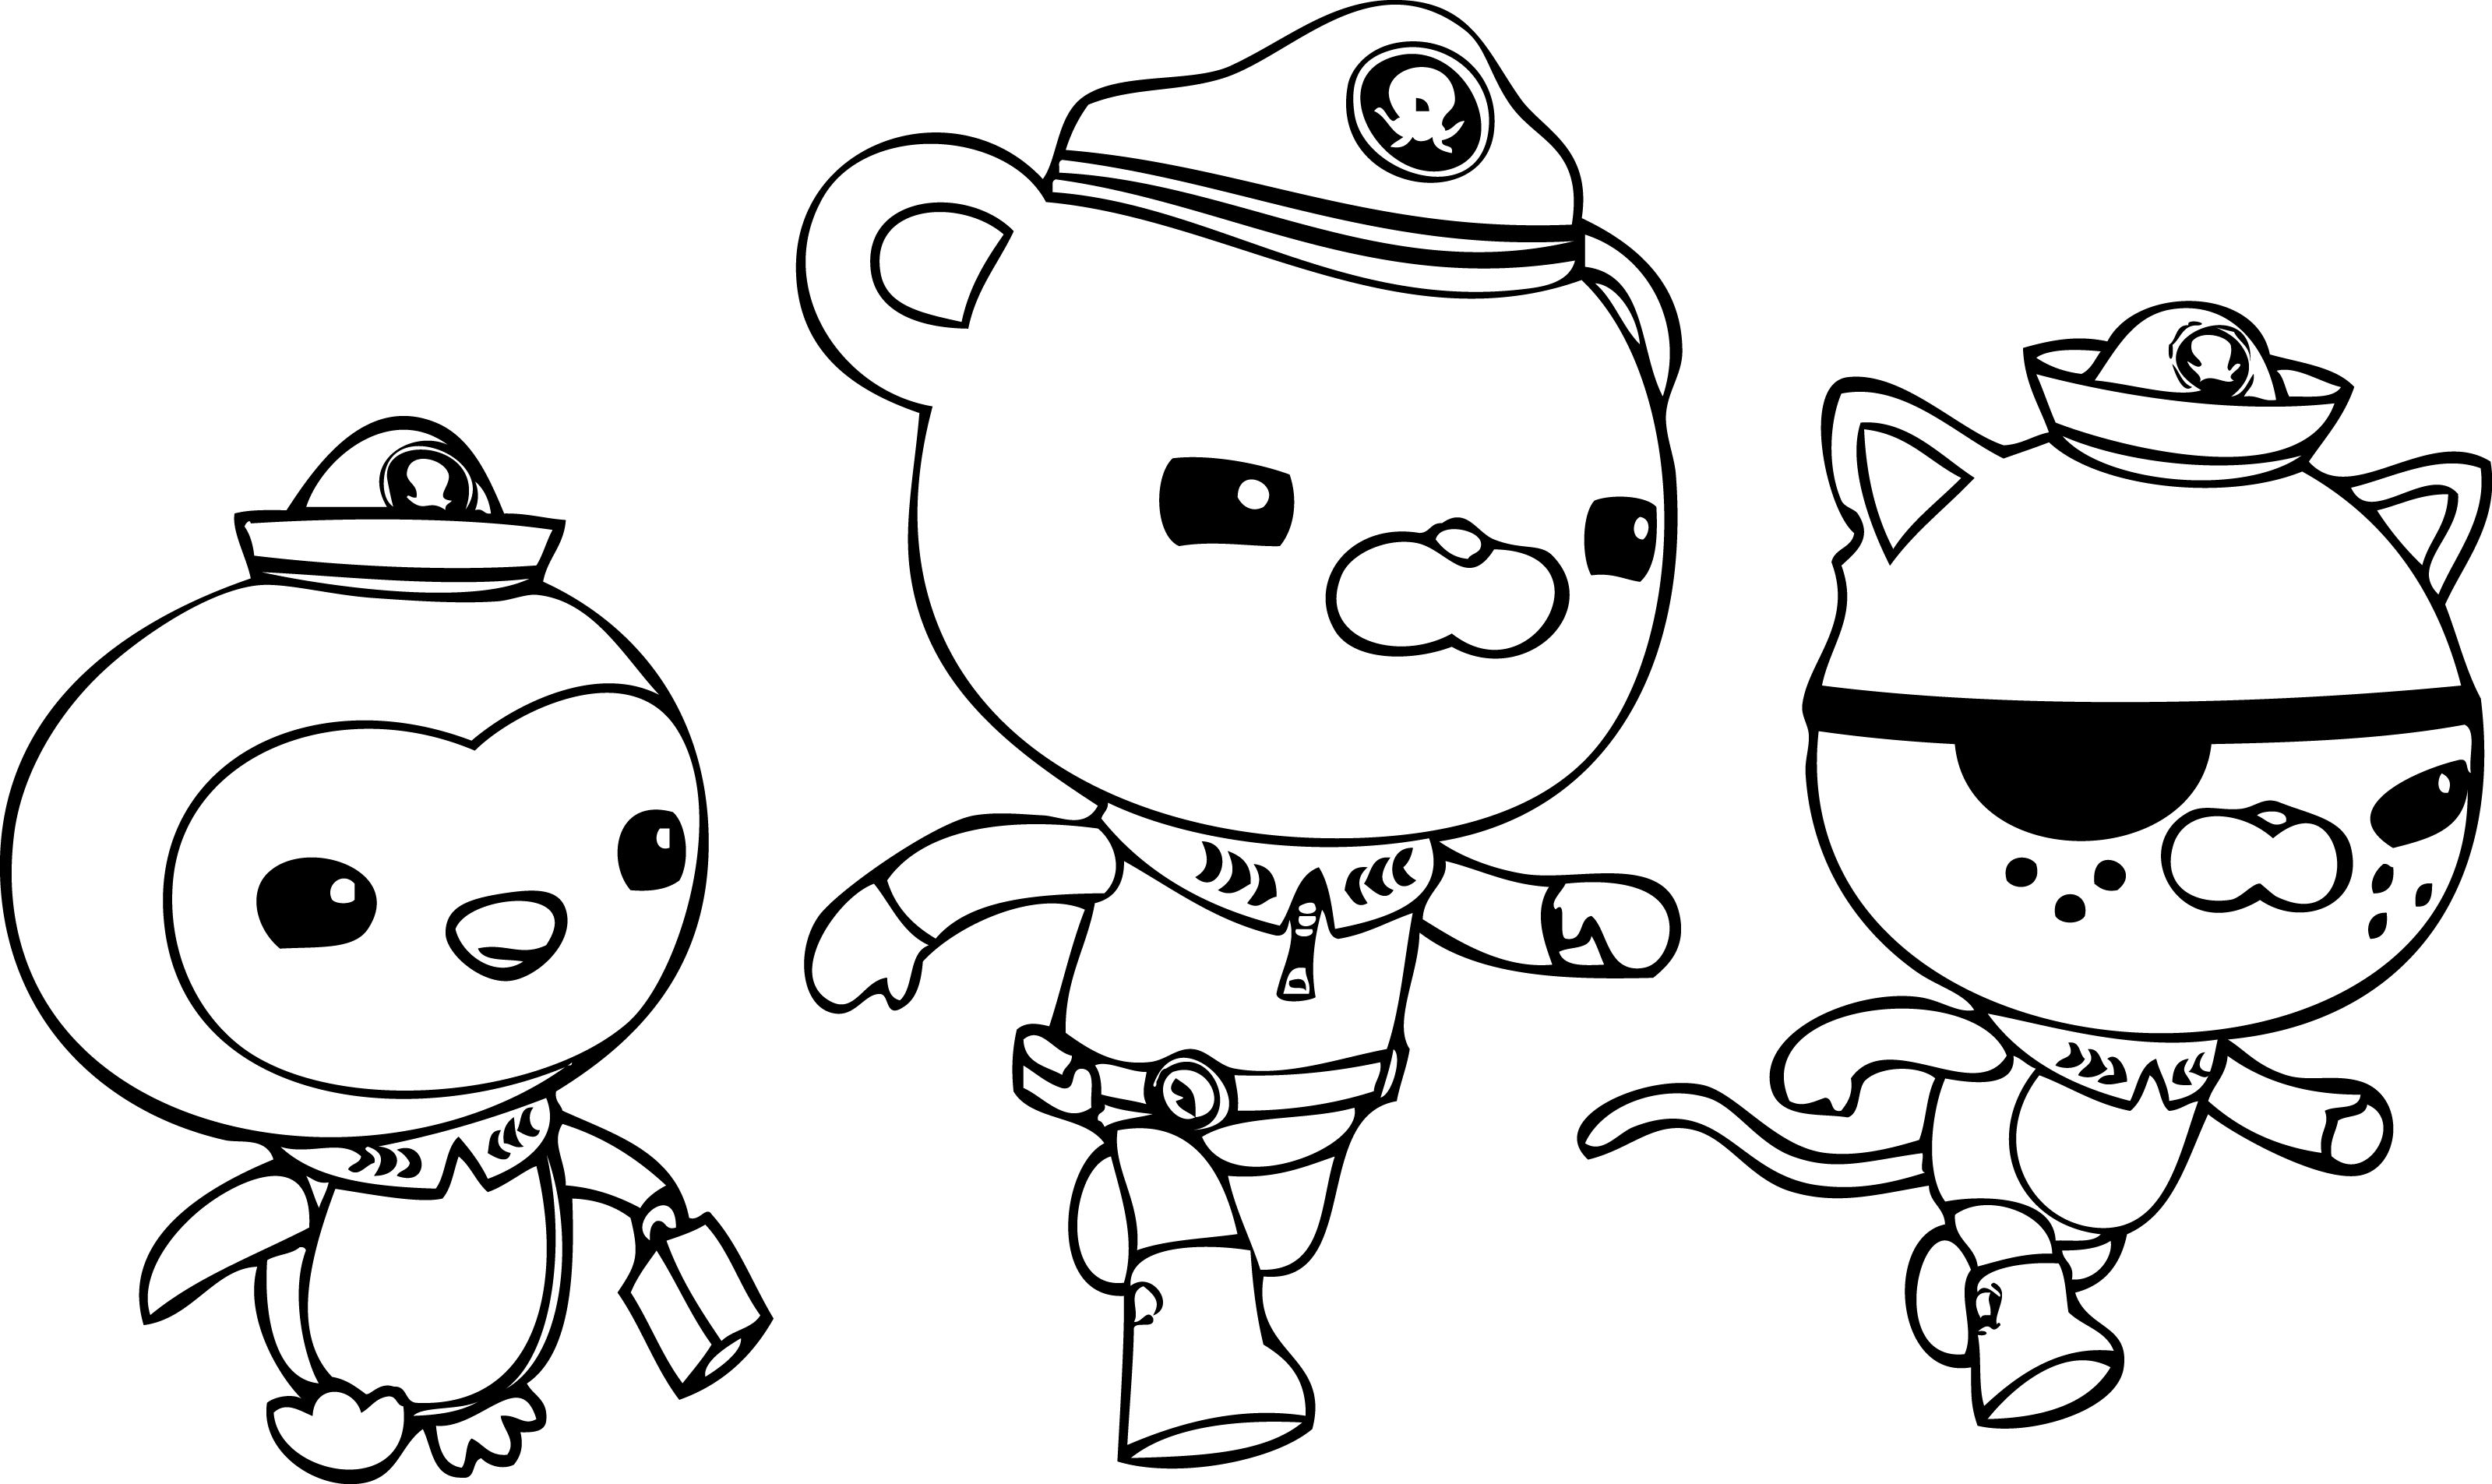 Octonauts 40618 Cartoons Printable Coloring Pages